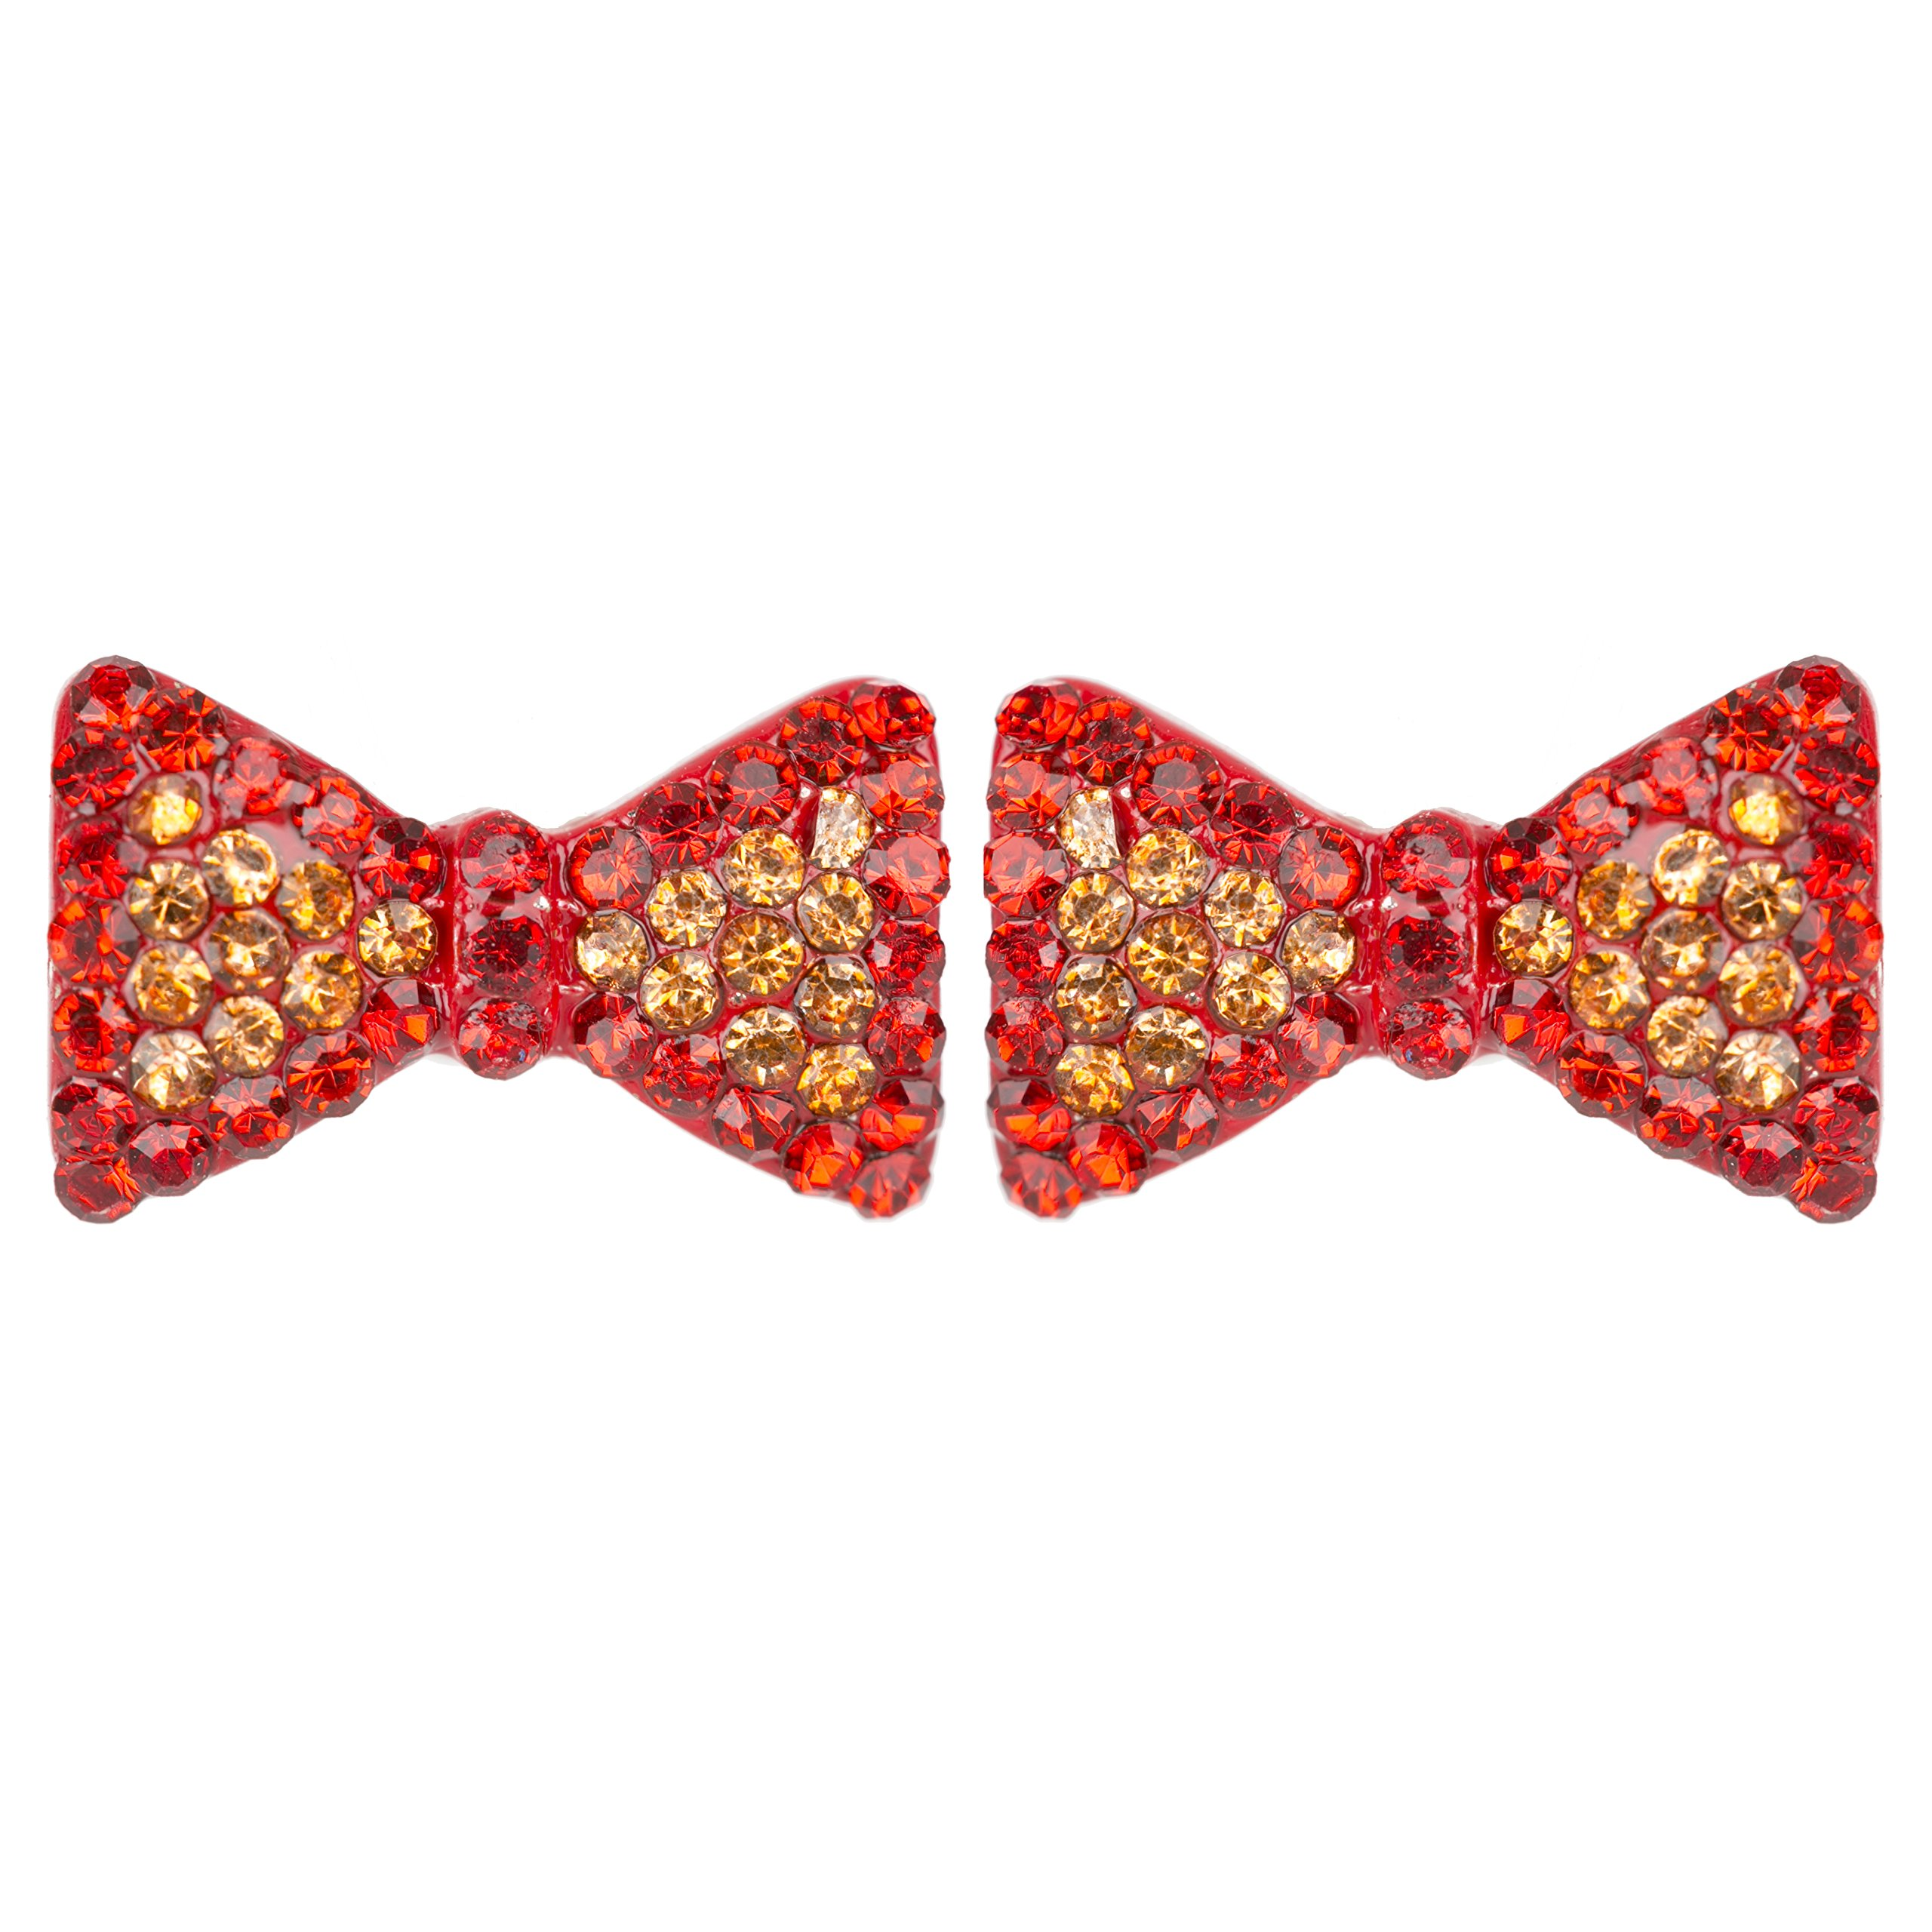 ACCESSORIESFOREVER Cute Crystal Rhinestone Bow Tie Design Charm Stud Post Earrings E1196 Red